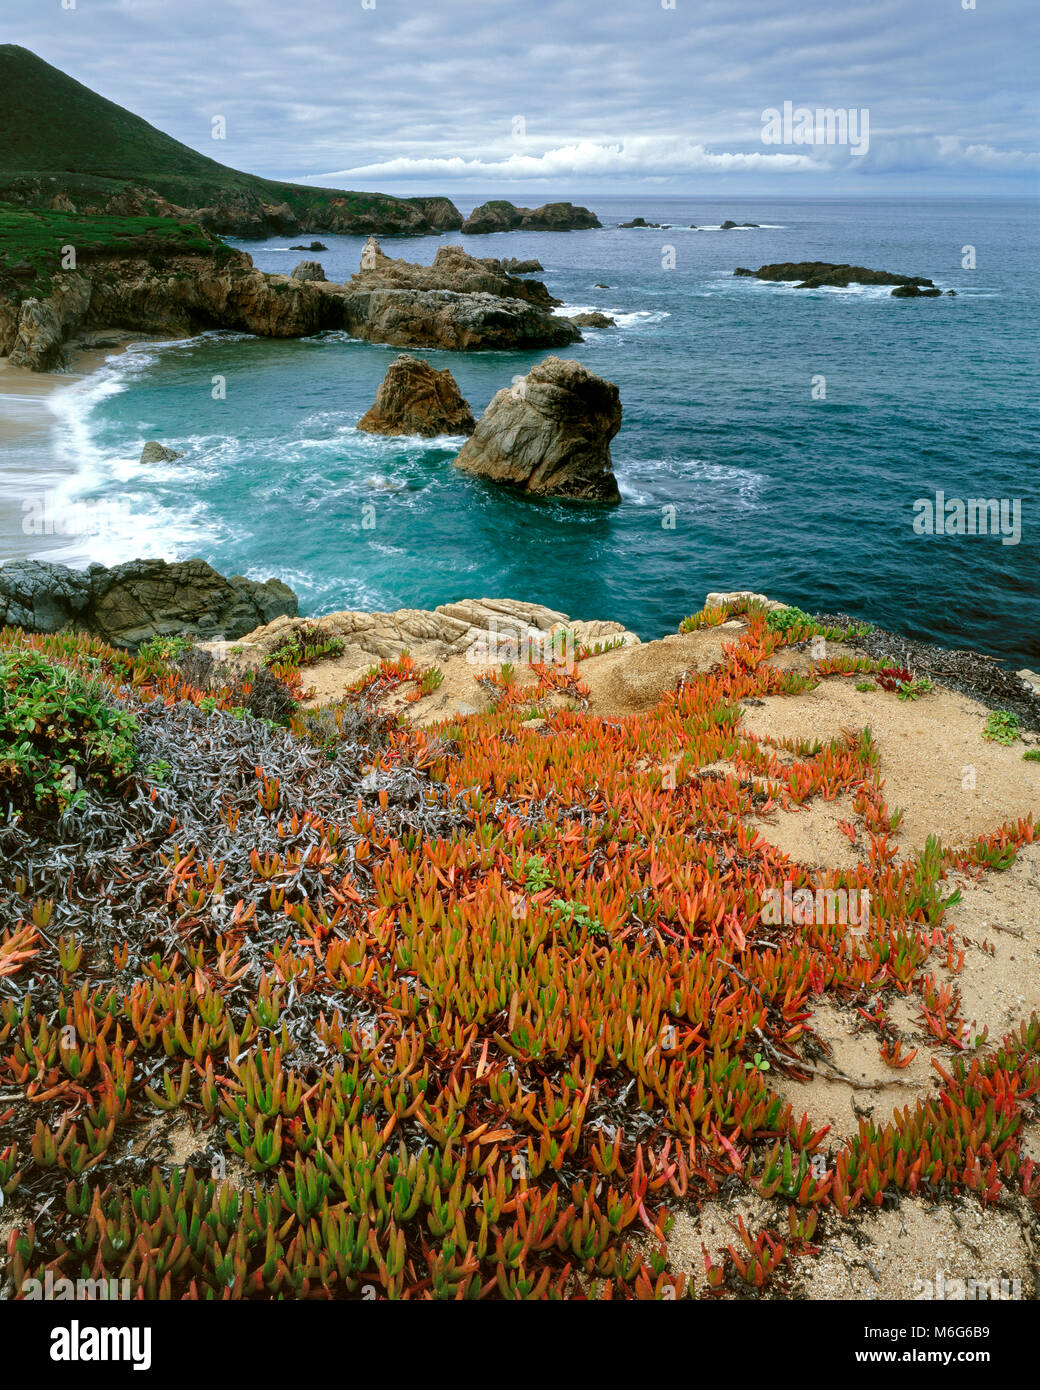 Ice Plant, Garrapata State Park, Big Sur, Monterey County, California - Stock Image